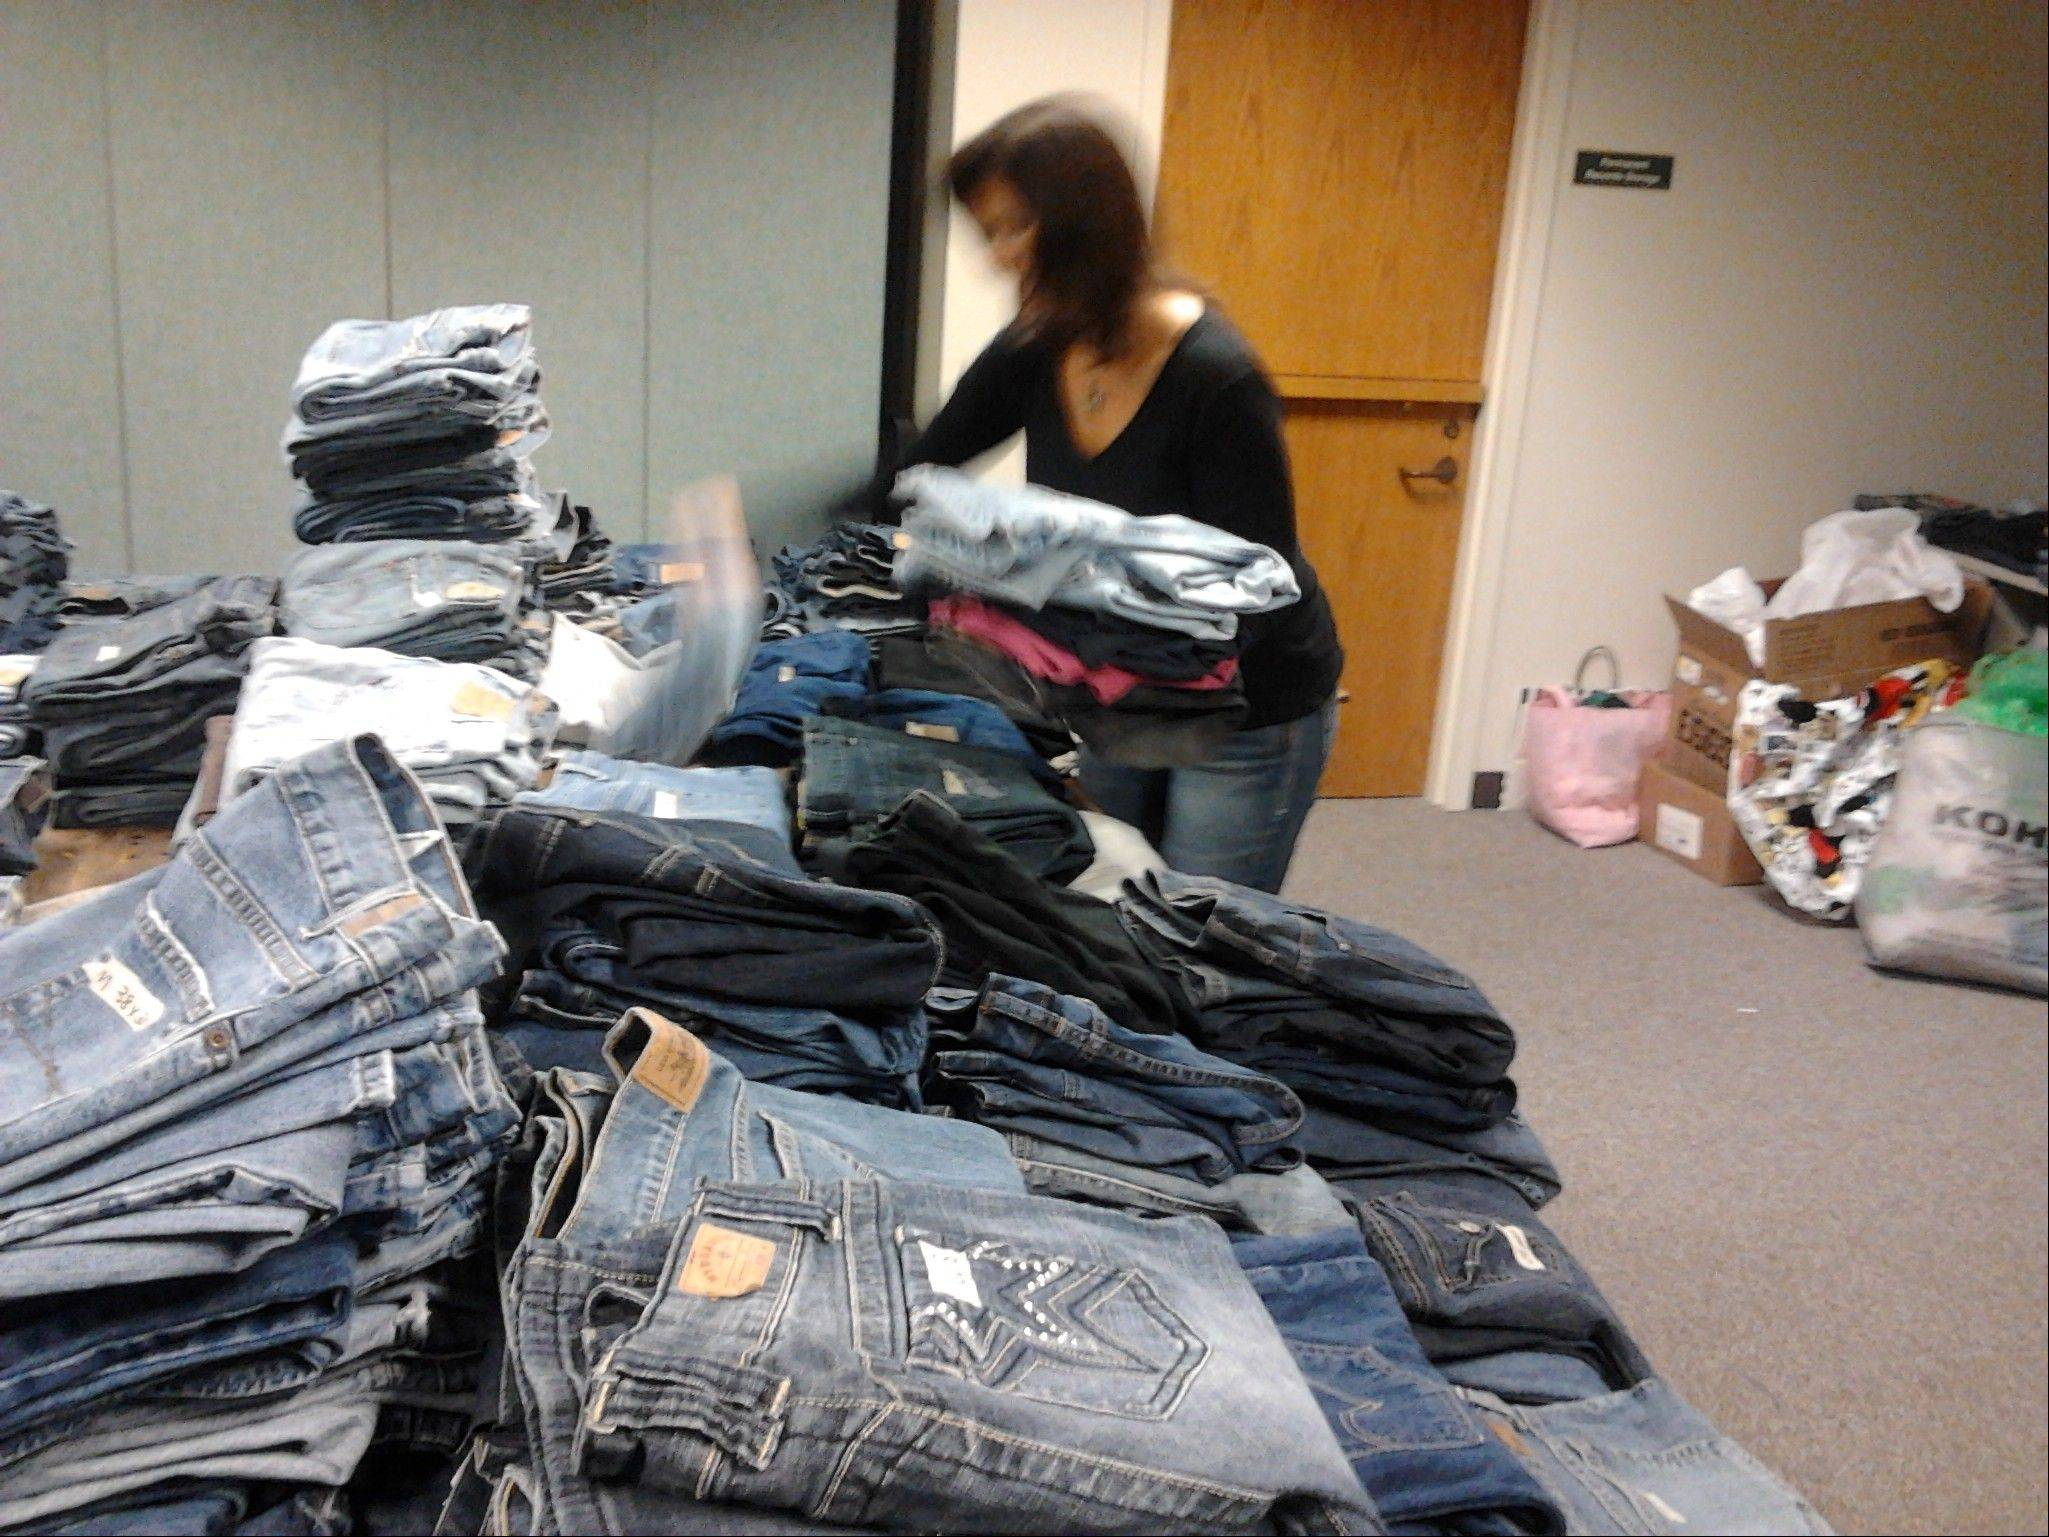 Susan Miller led a volunteer effort to provide about 1,000 pairs of donated jeans at no cost to those in need who visited the ministry center Thursday night at Lake Zurich's St. Francis de Sales Parish.